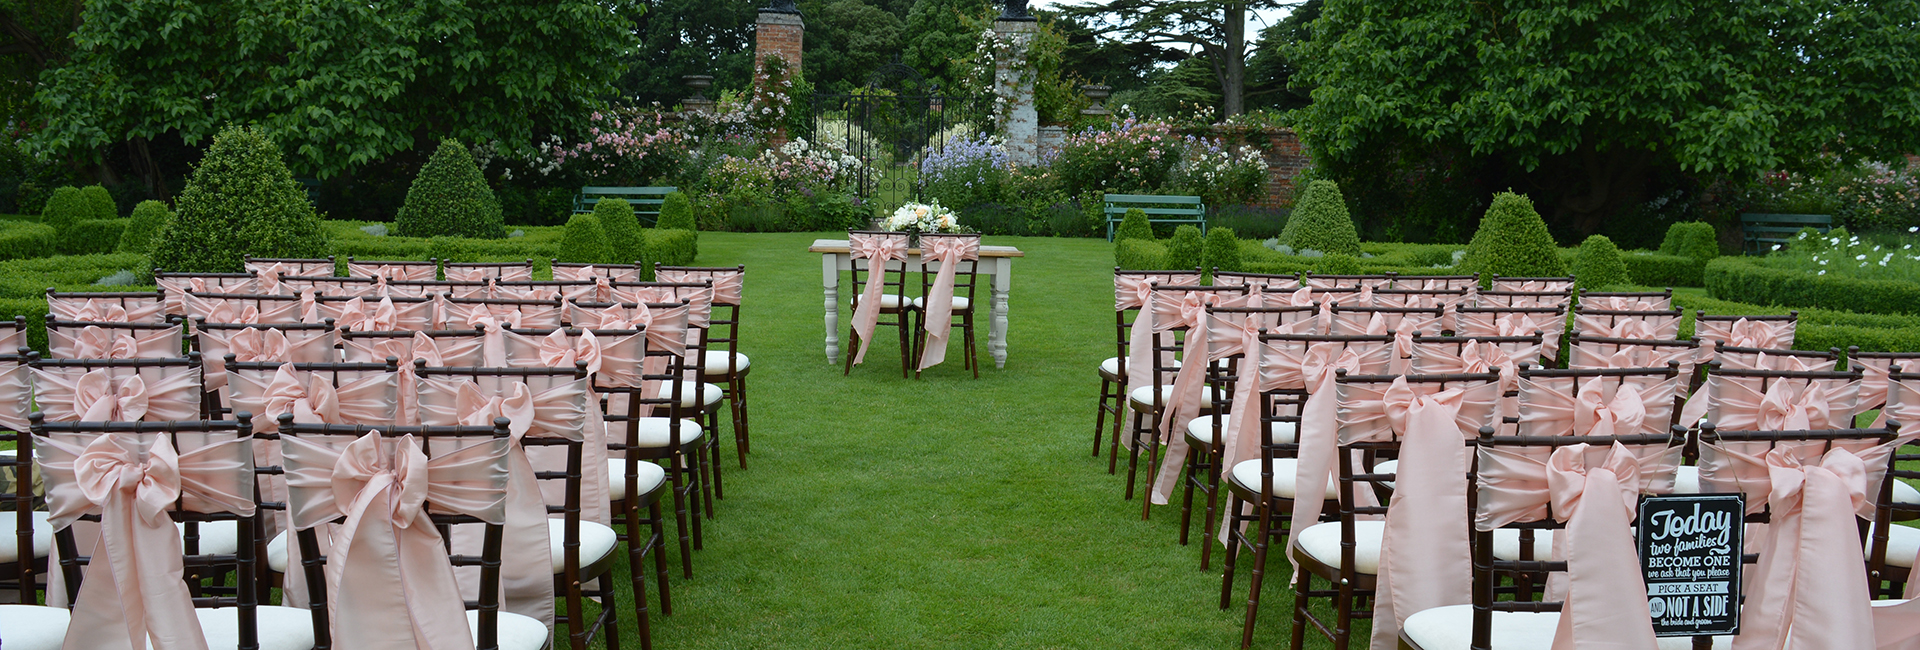 mahogany chiavariy chairs at hintlesham hall suffolk